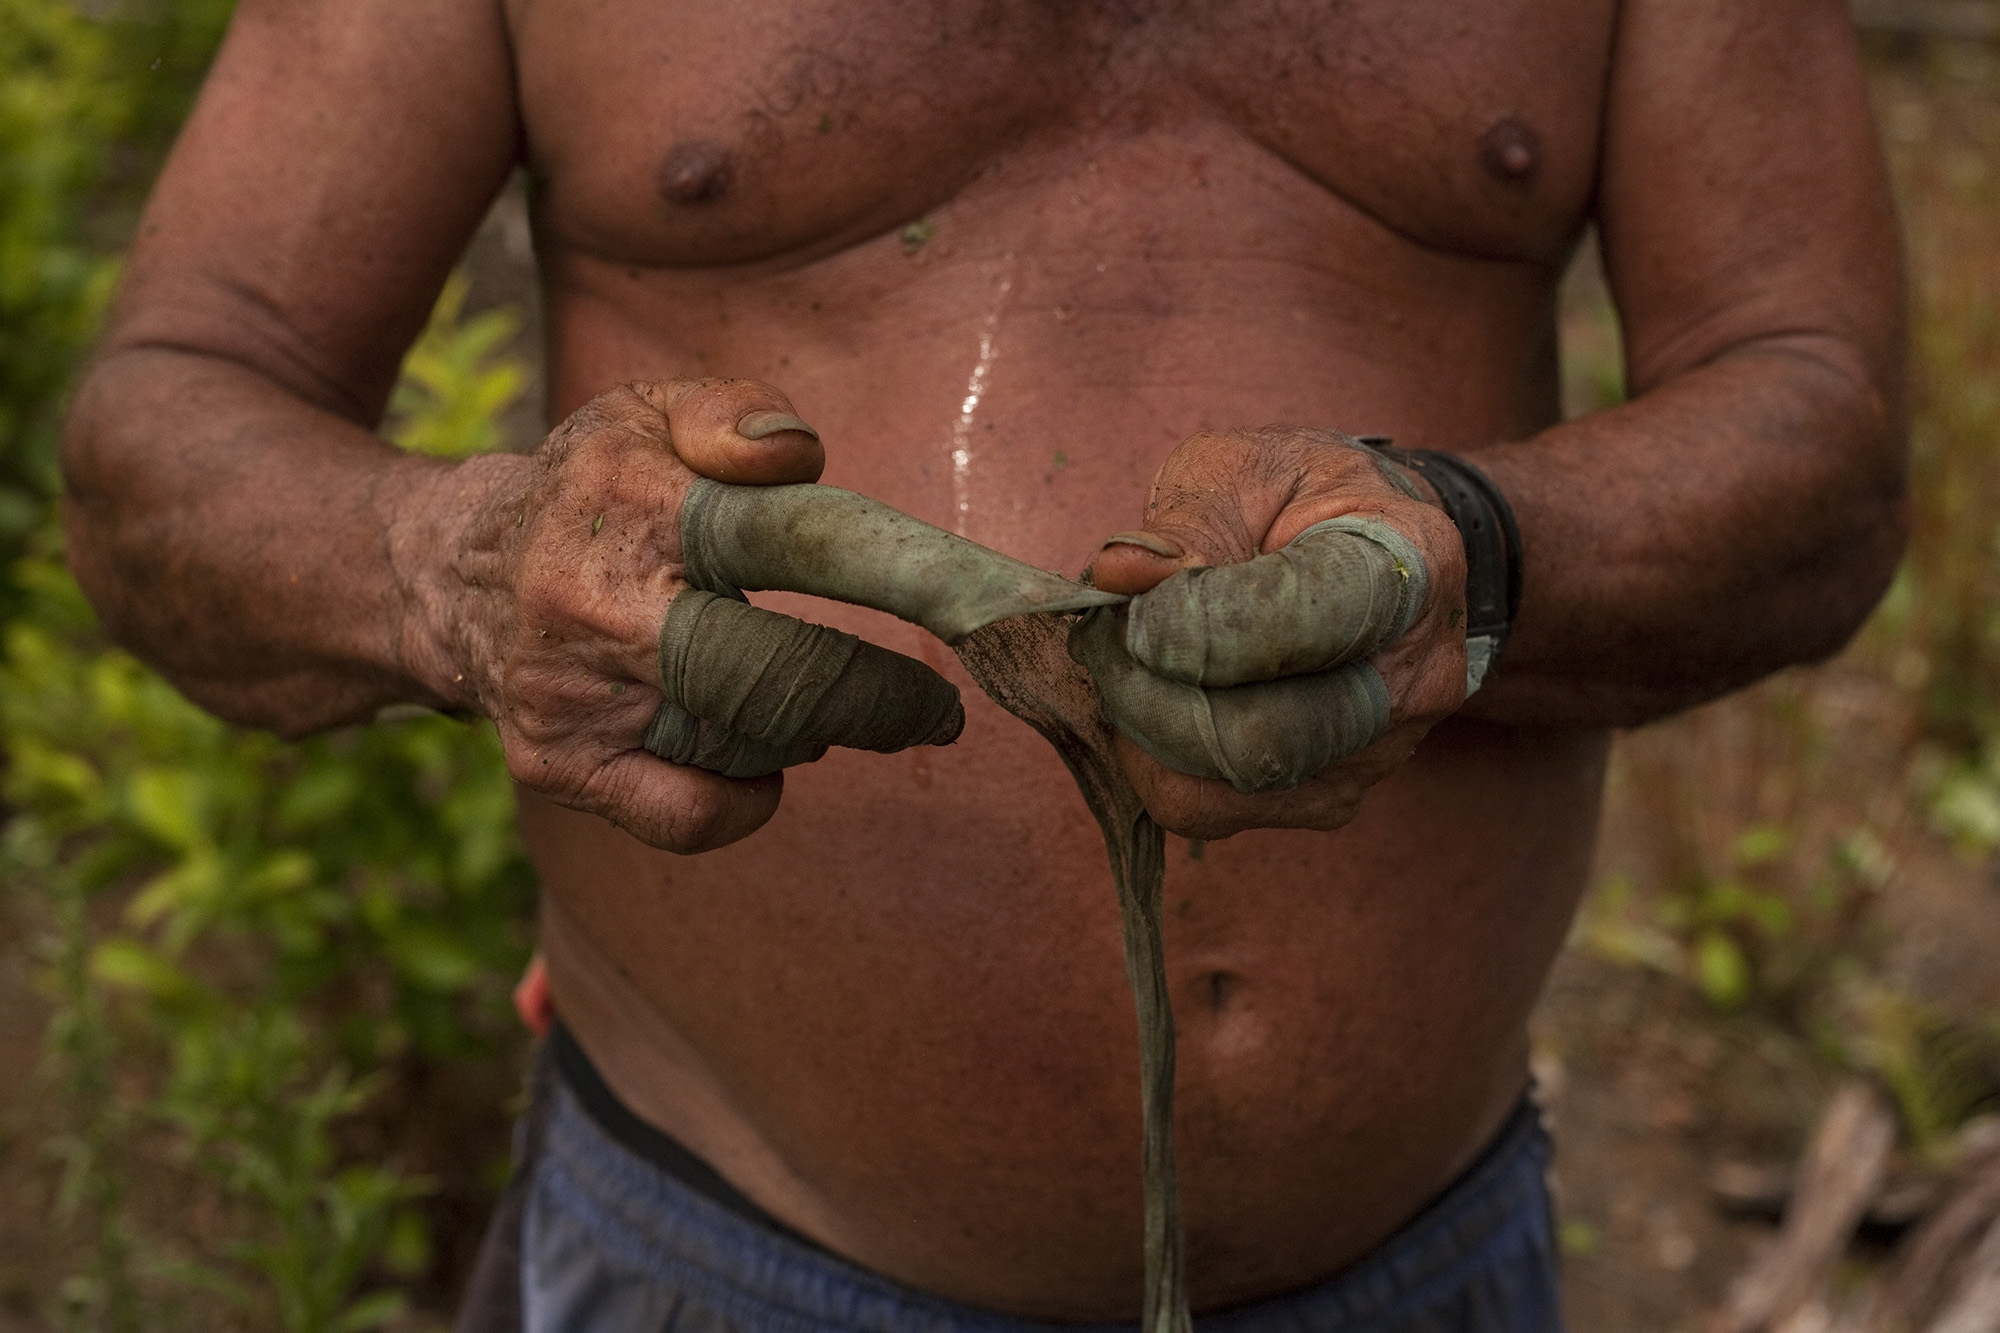 Otto Felix Forero collects coca leaves on a farm located within the Nukak National Nature Reserve, in Guaviare, Colombia. Otto has been doing this work for more than 20 years and has thus brought his family forward. The raspachines protect their hands with mosquito net fabrics that entangle their fingers.